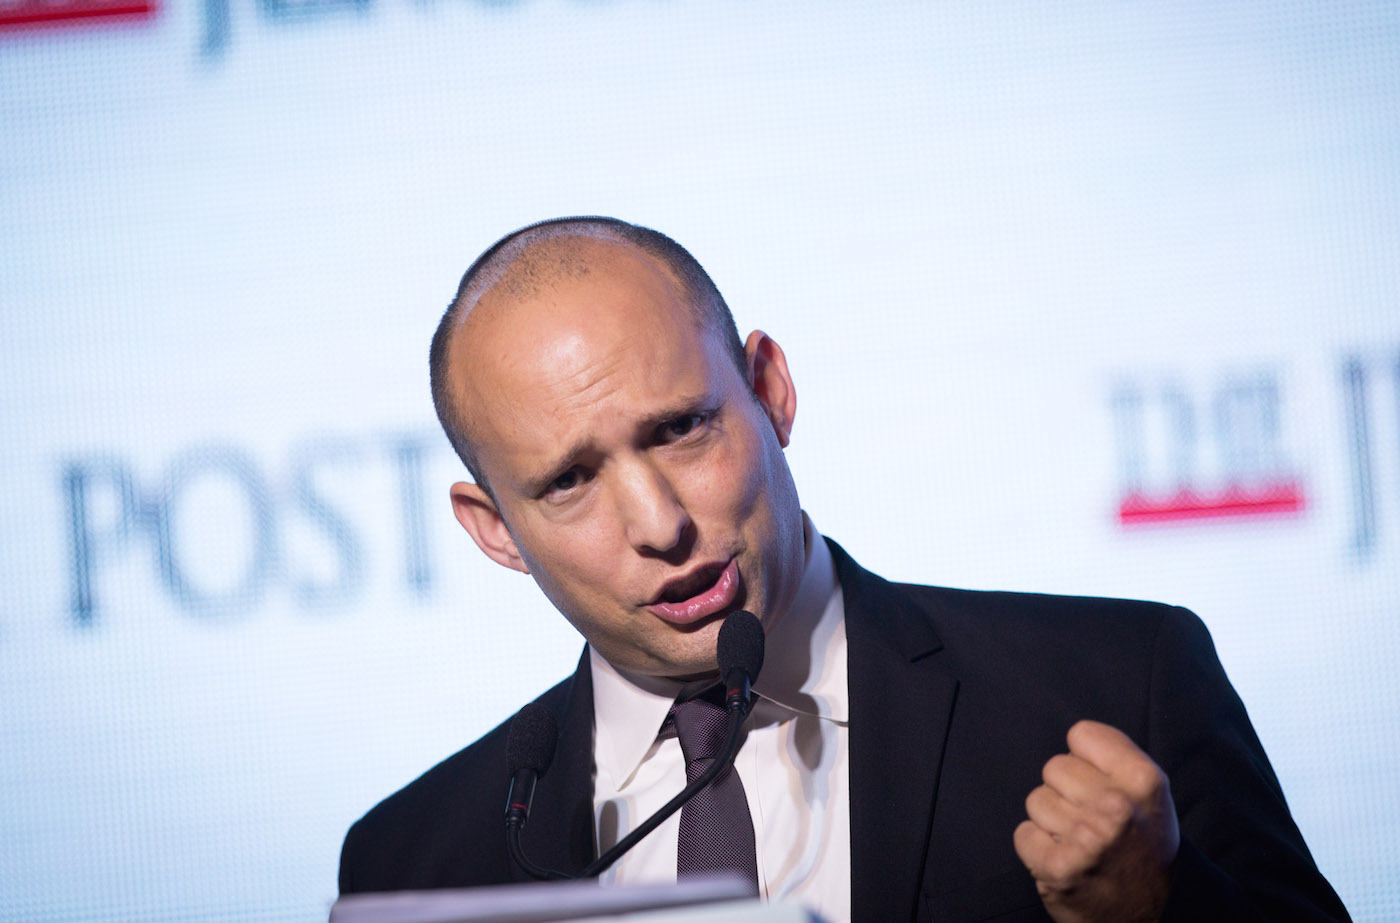 Naftali Bennett speaking at a conference in Jerusalem, Nov. 18, 2015. (Miriam Alster /Flash90)